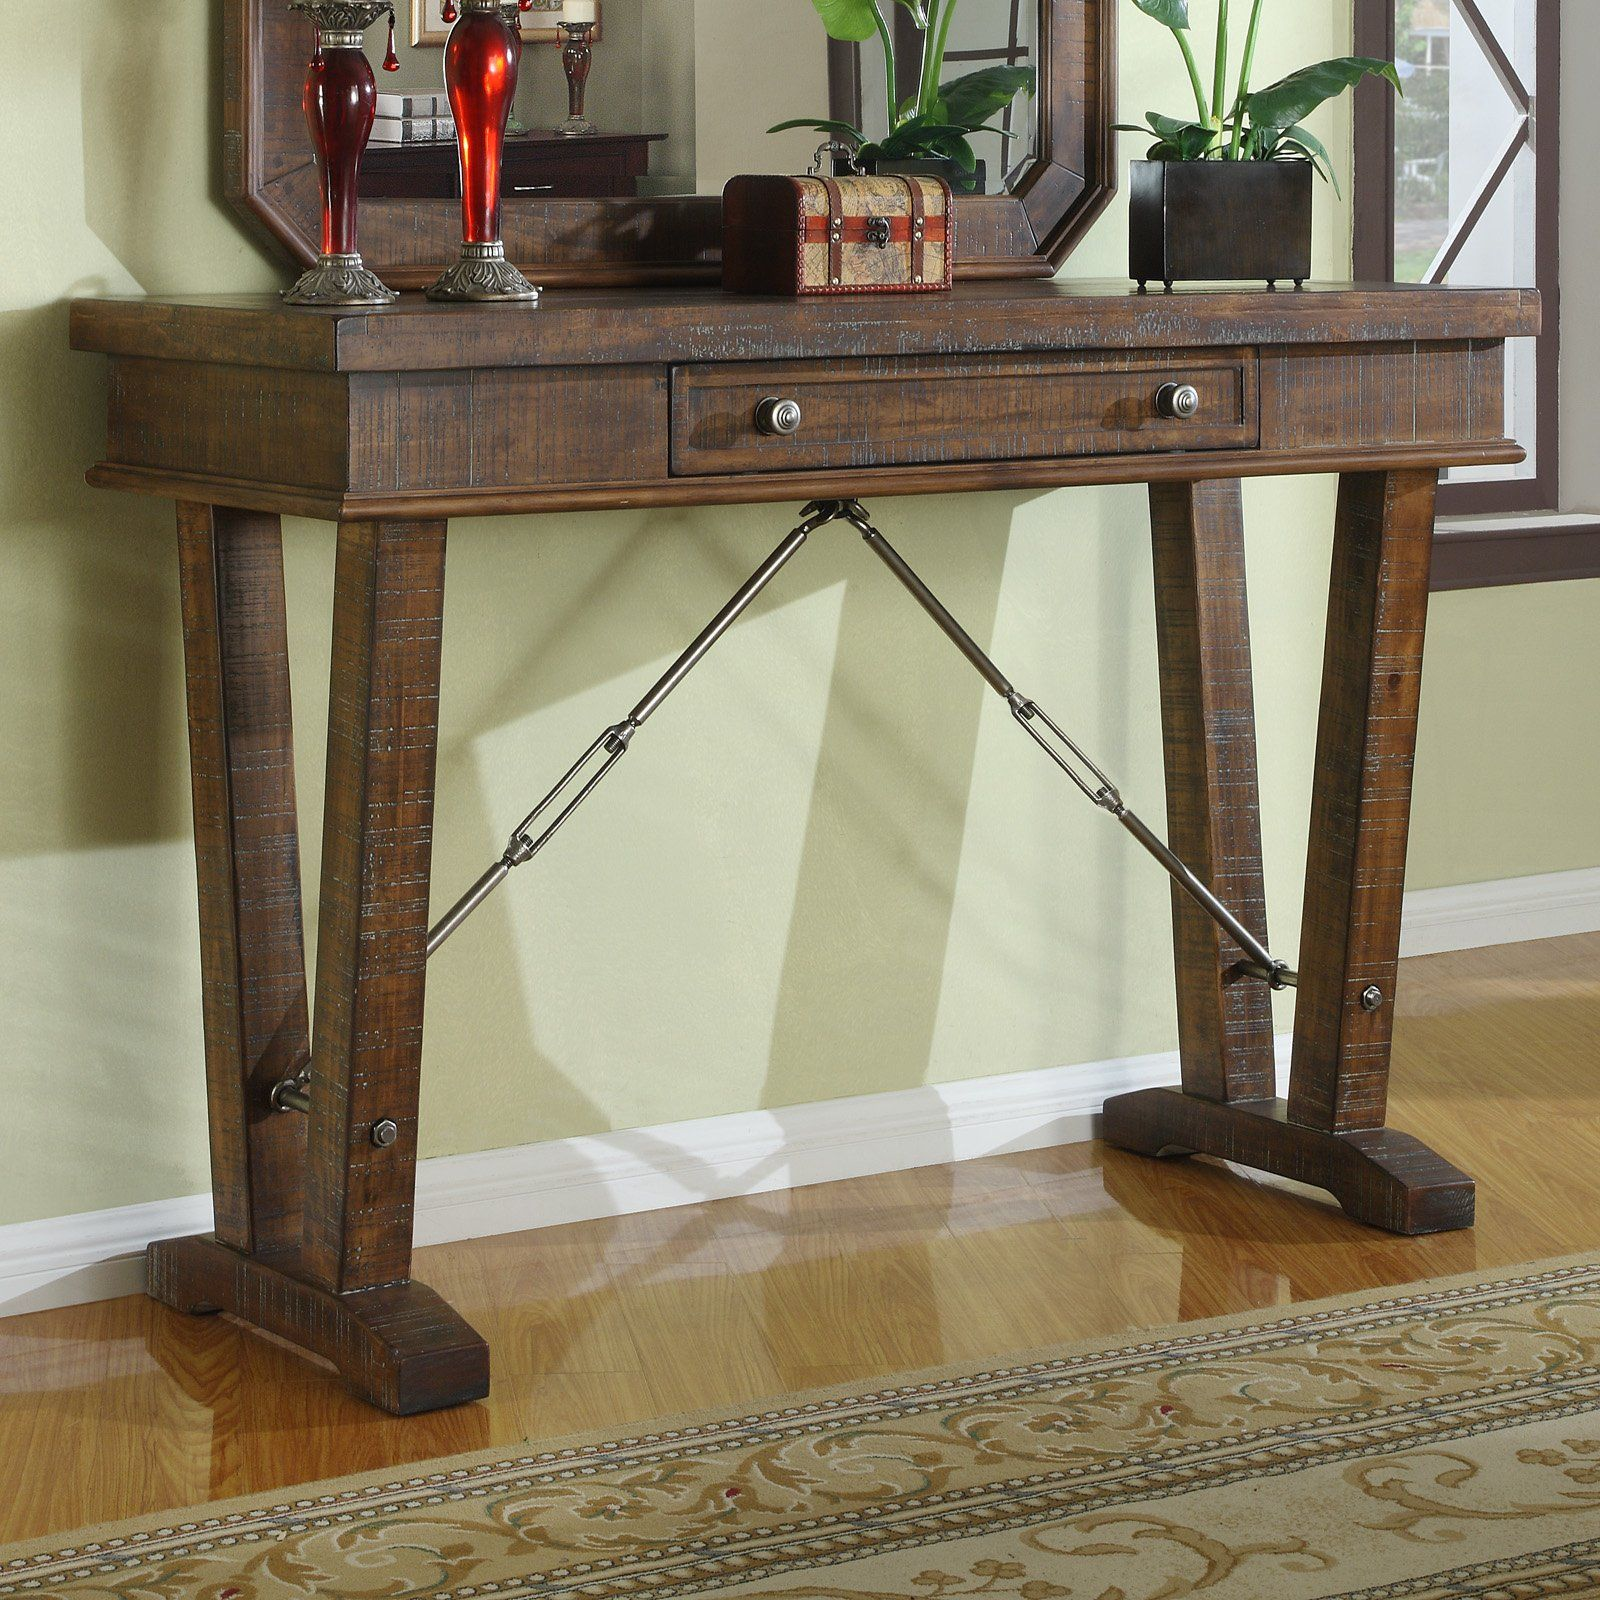 Castlegate Sideboard Table We Got To Go With Our New Dining Set